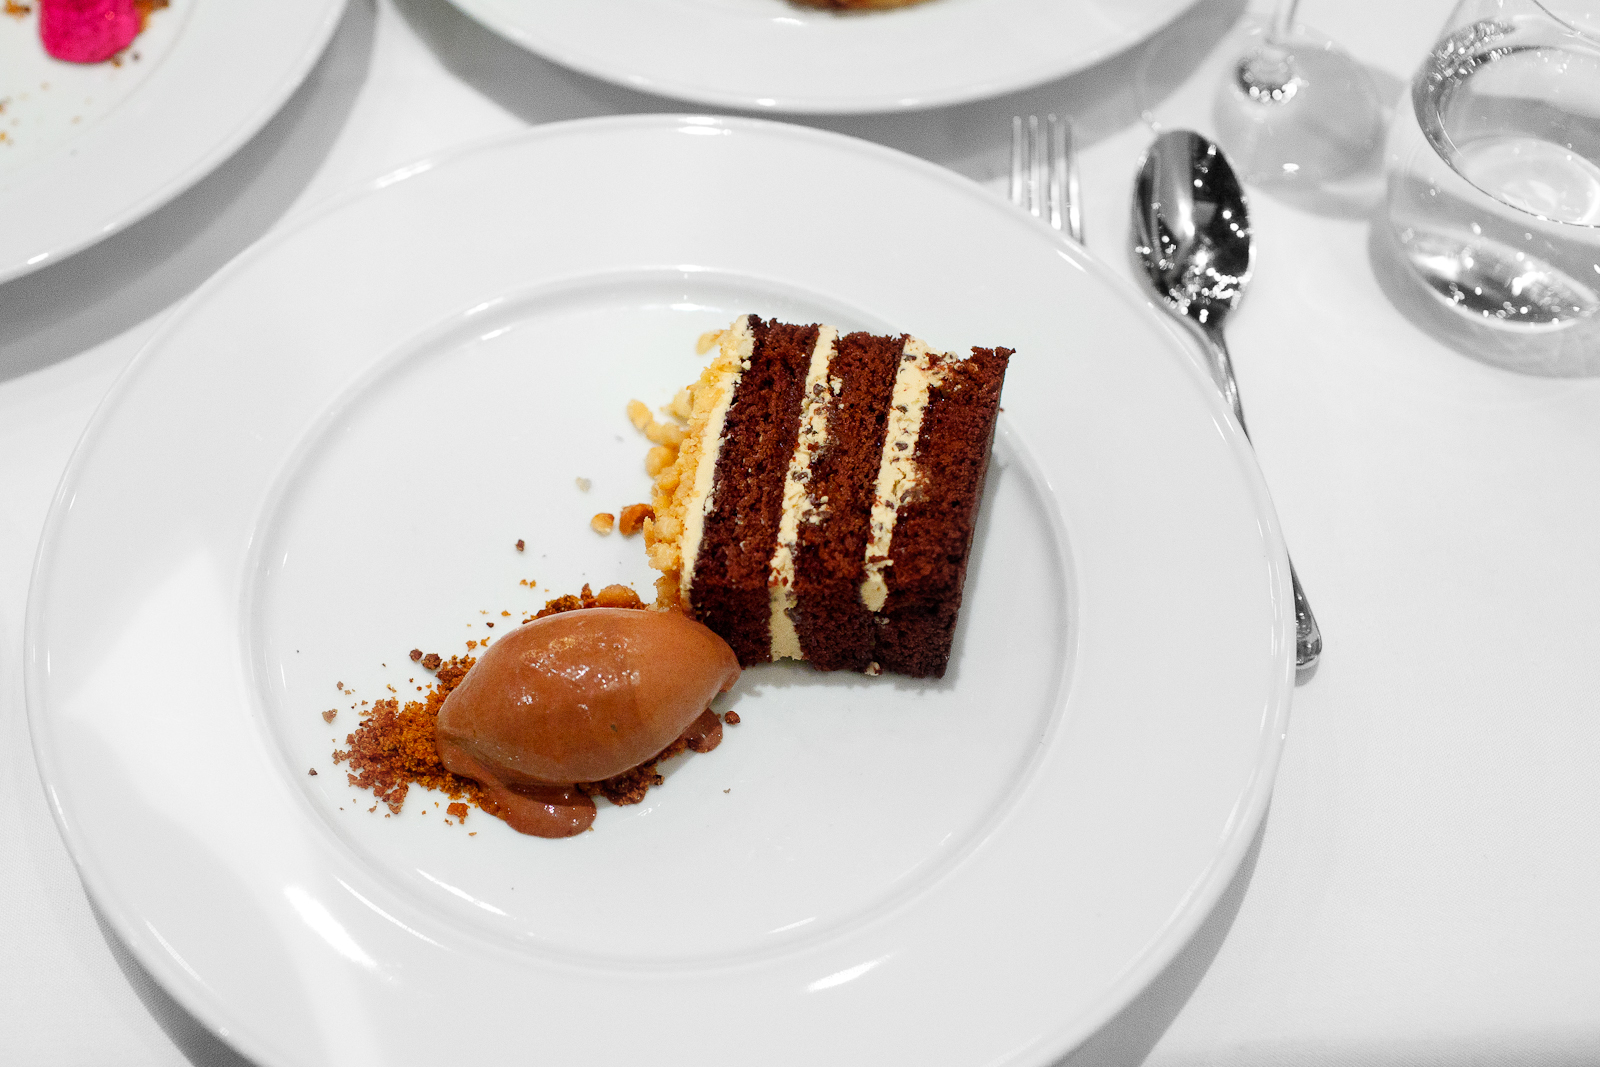 8th Course: Torta de cioccolato - chocolate cake, passionfruit caramel buttercream, macadamia, dark chocolate gelato